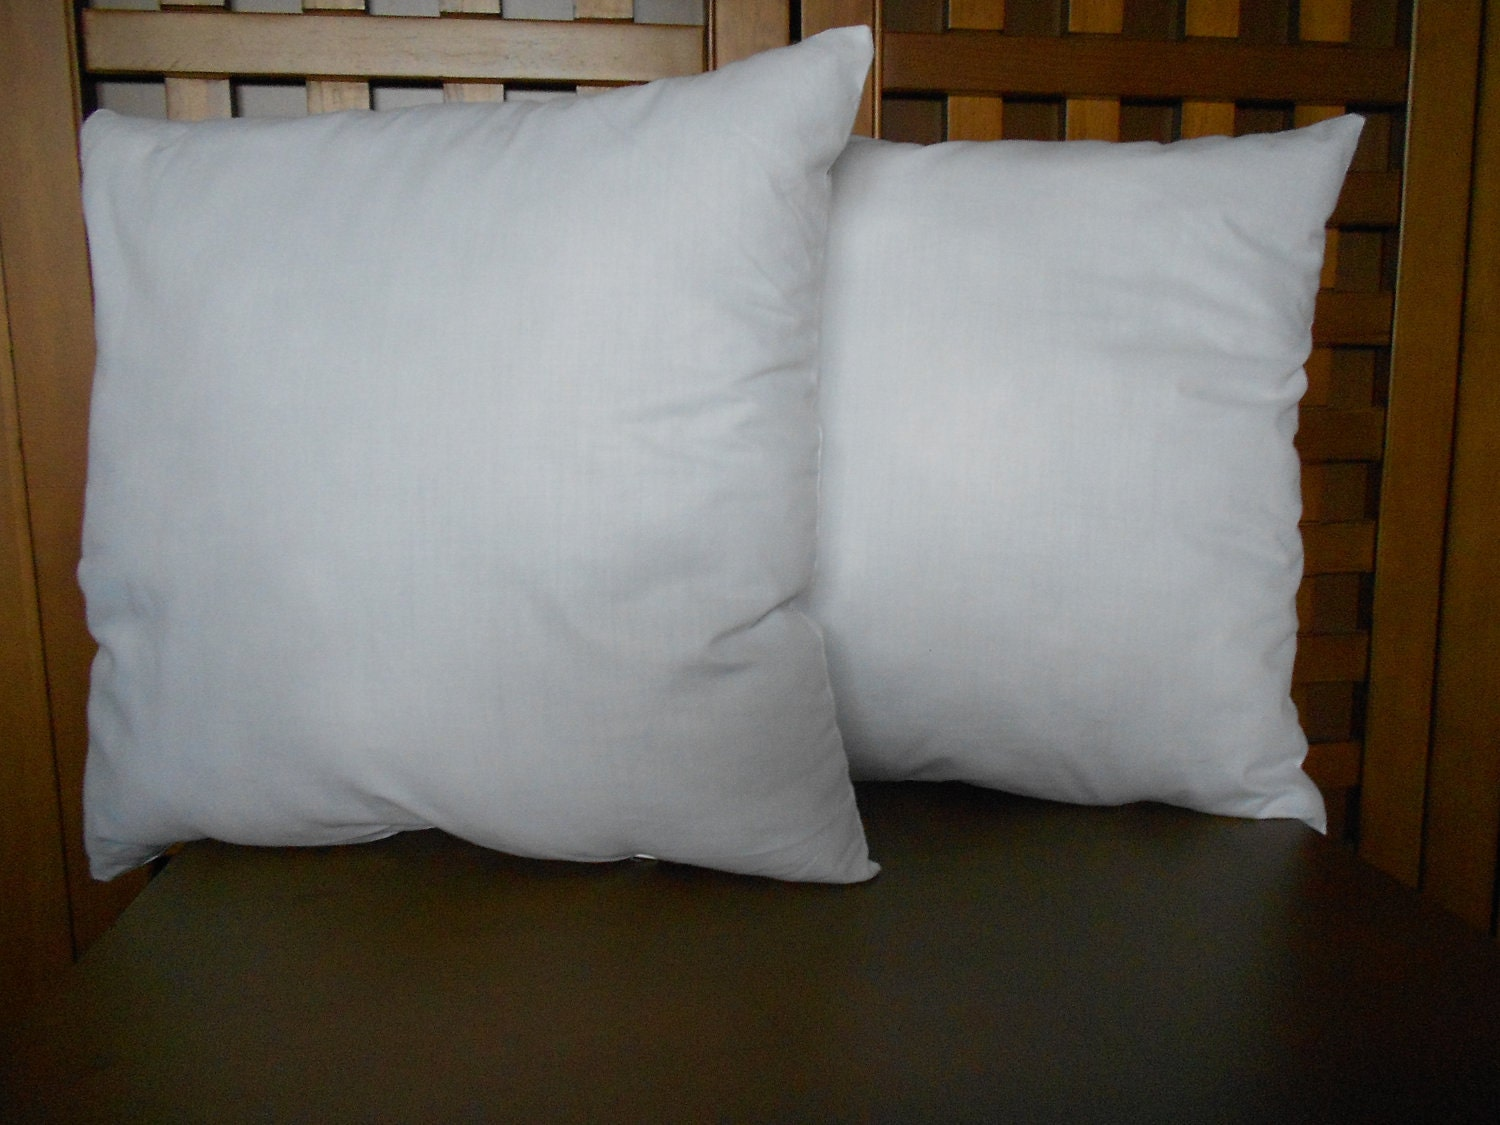 asp insert orig forms pillow fabric showitems home pellon goods x